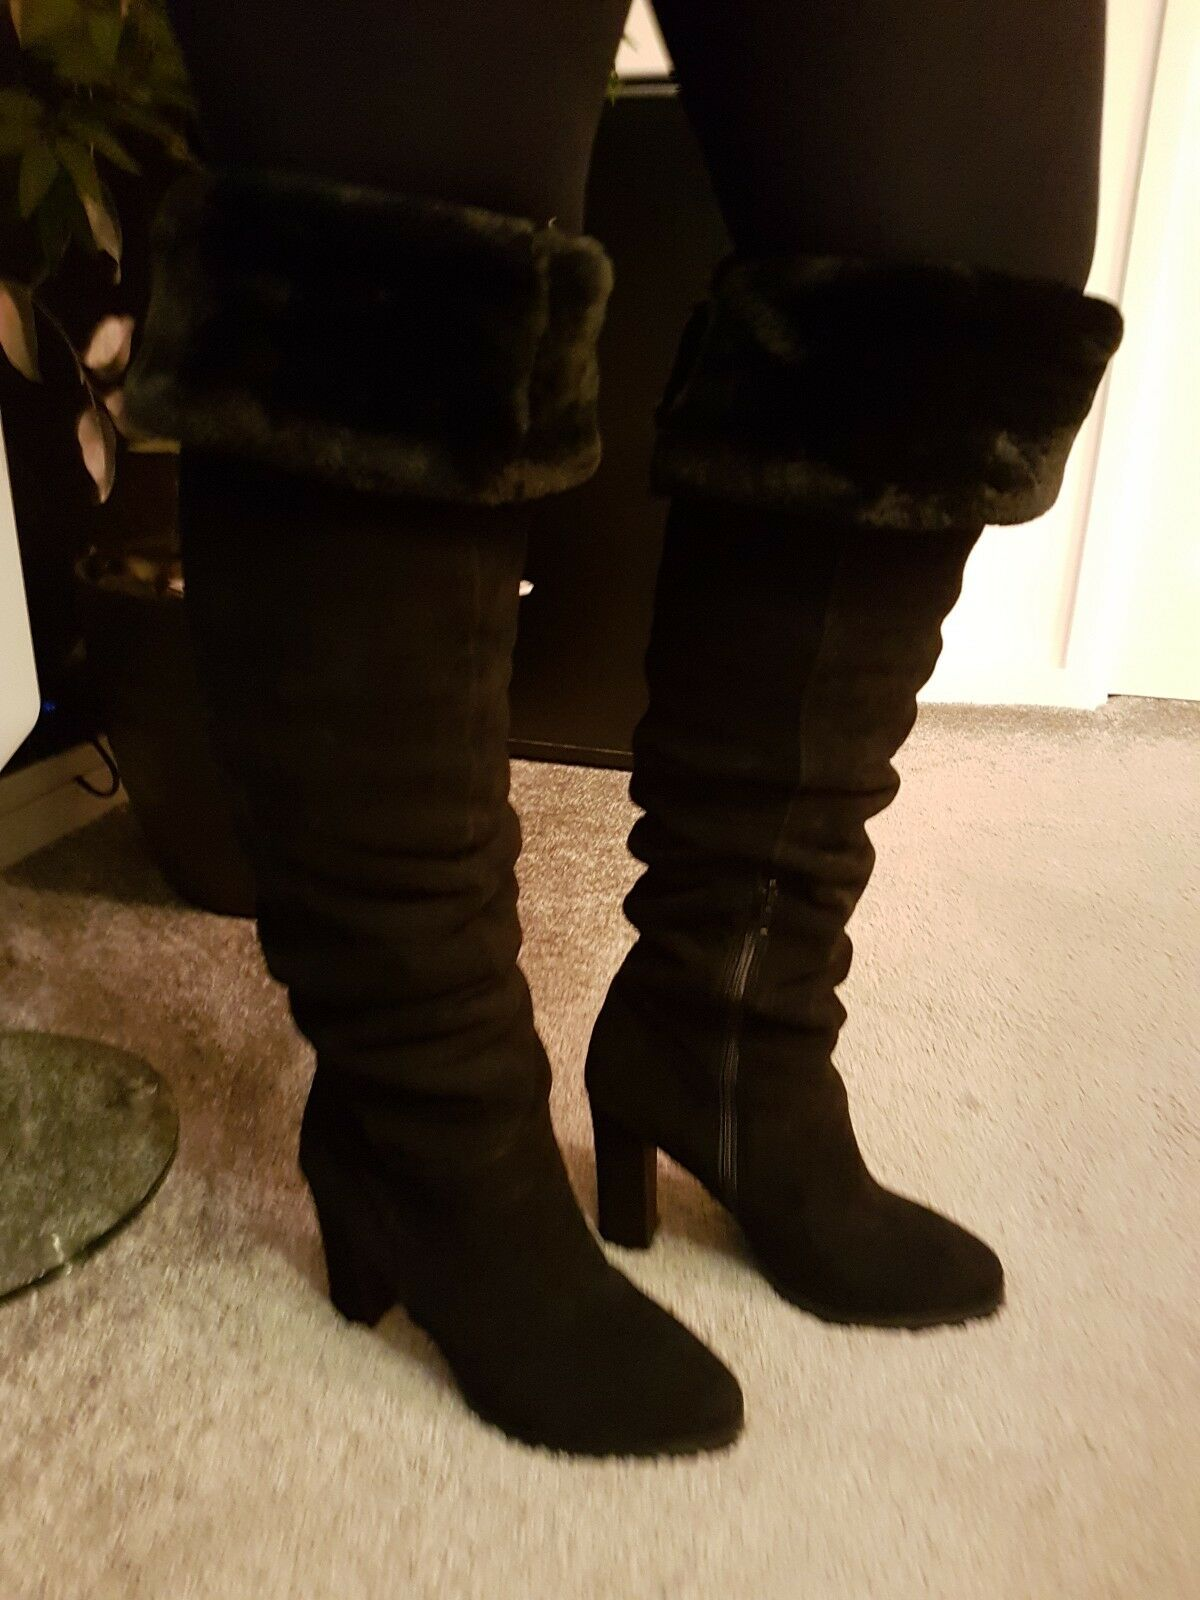 Stunning River Island Over Knee Boots. Size 6. Brand New